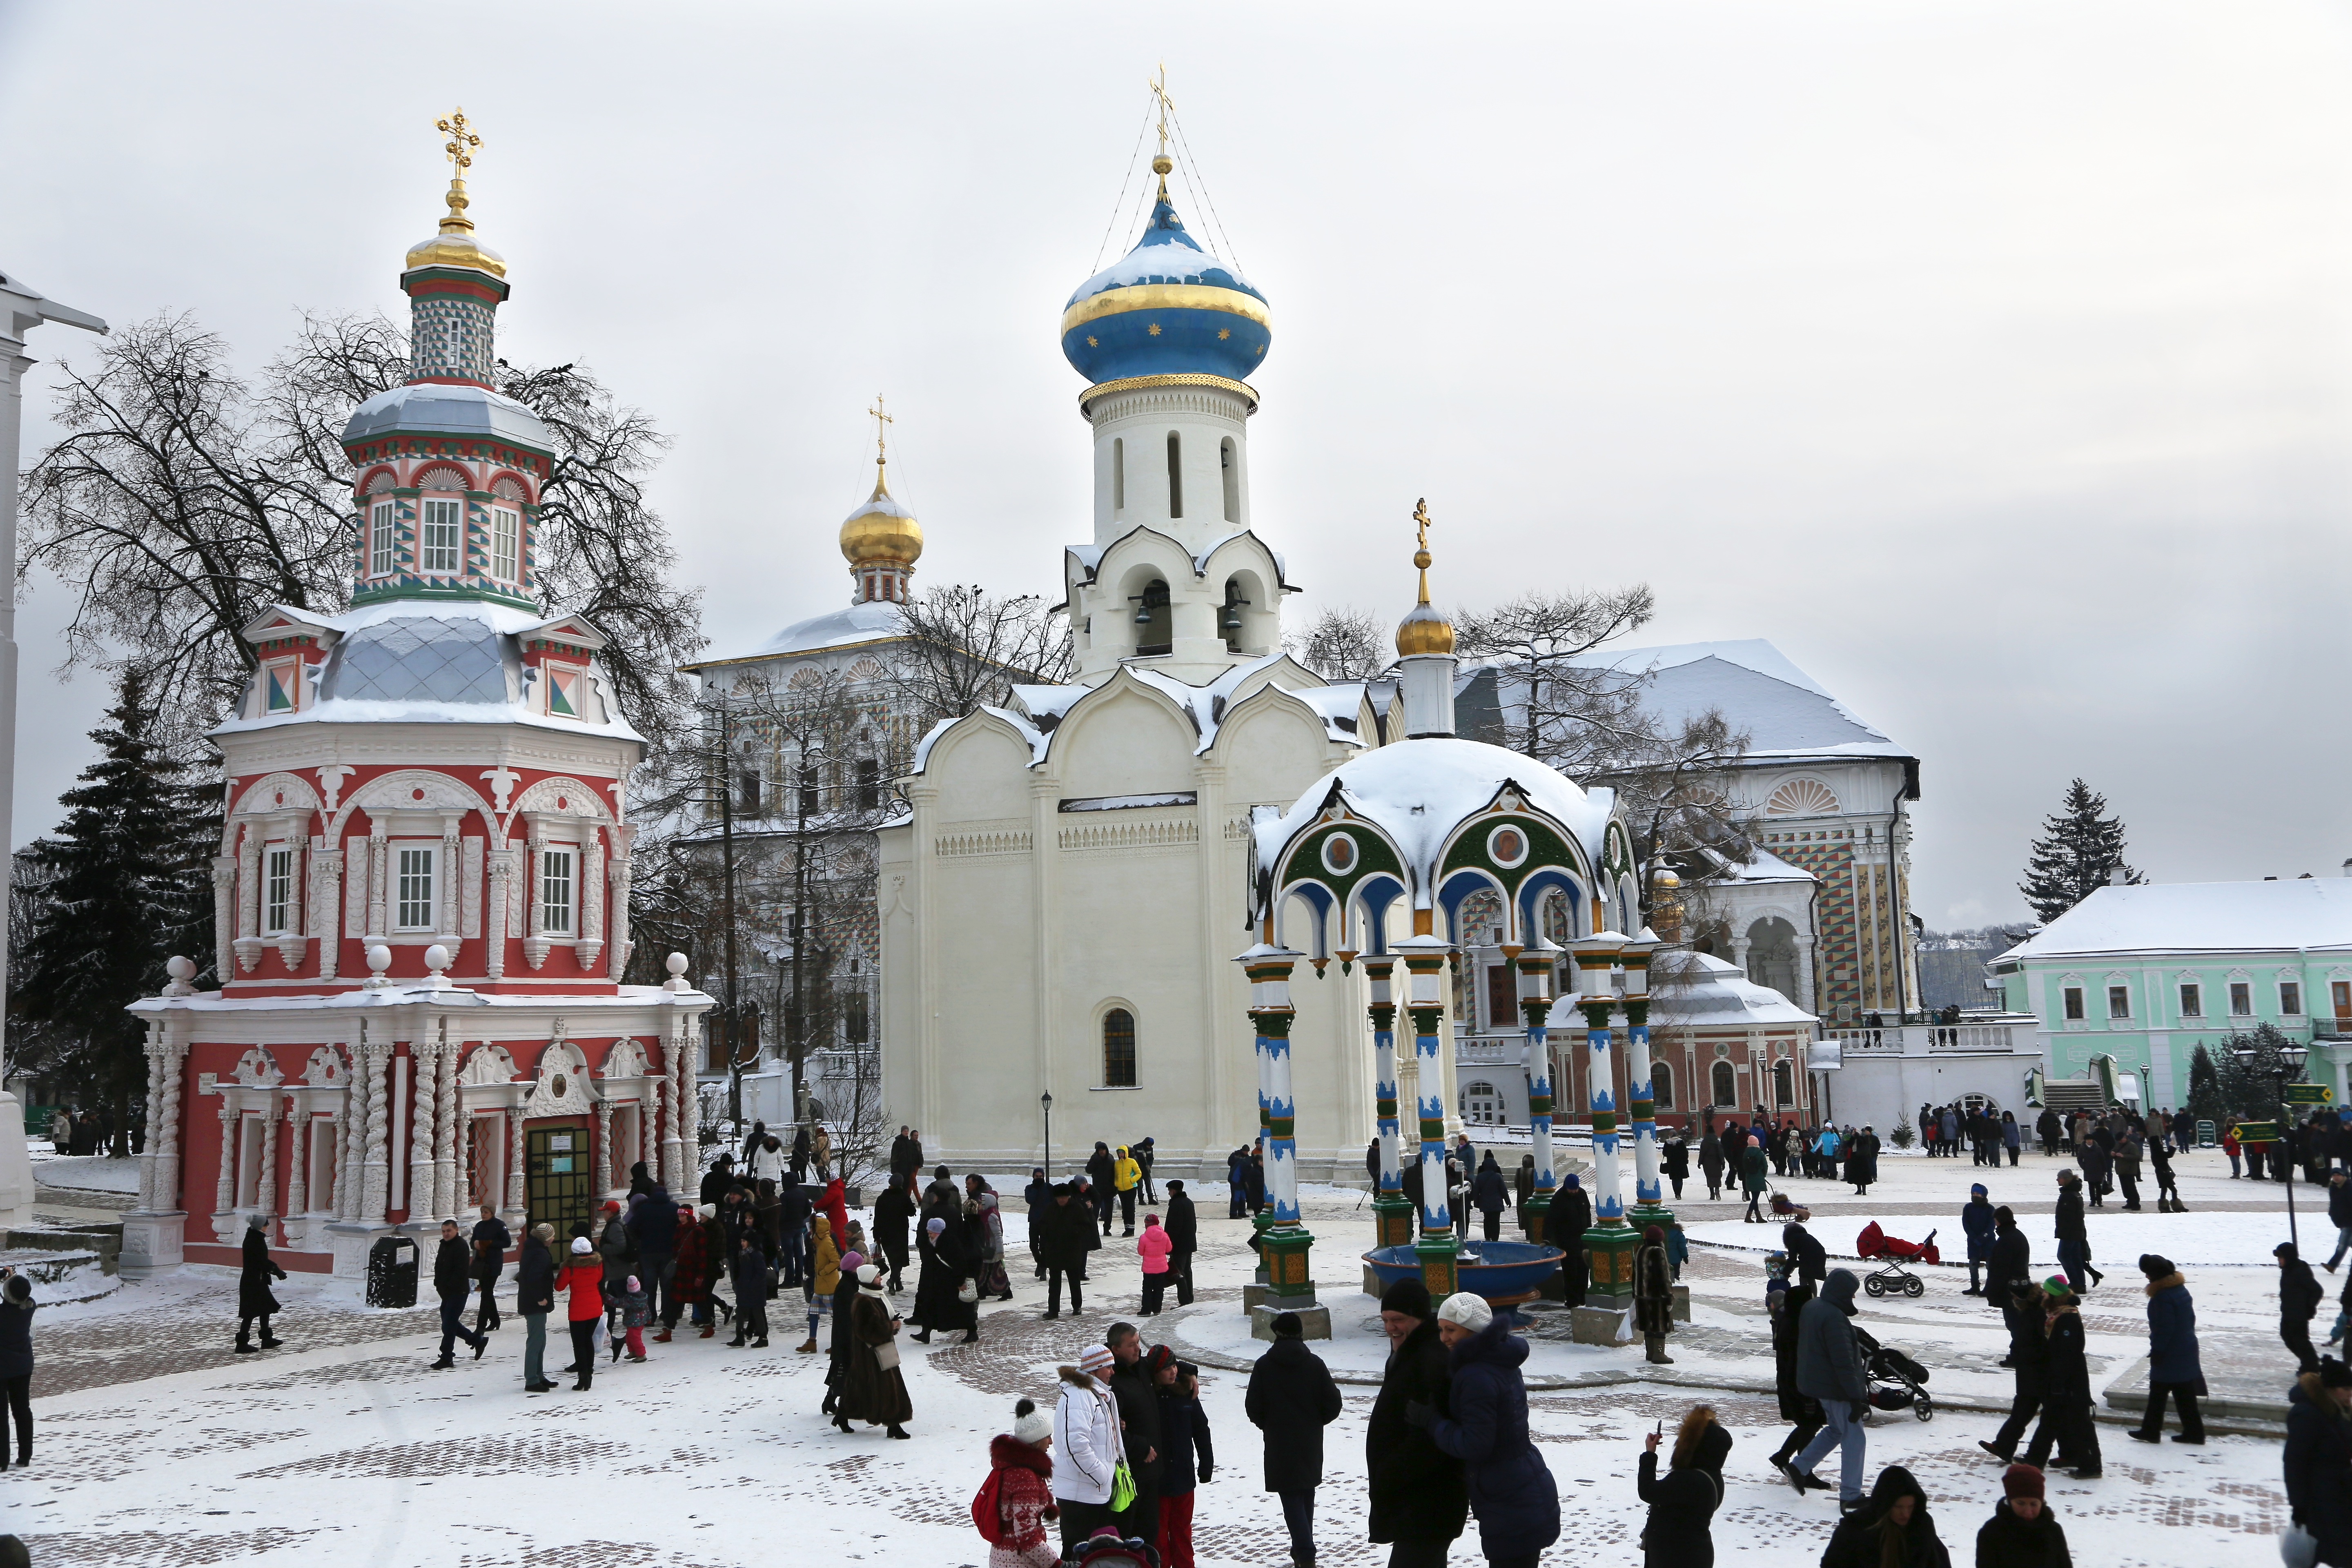 Sergiev Posad project to transform town to Russian Orthodox church beacon